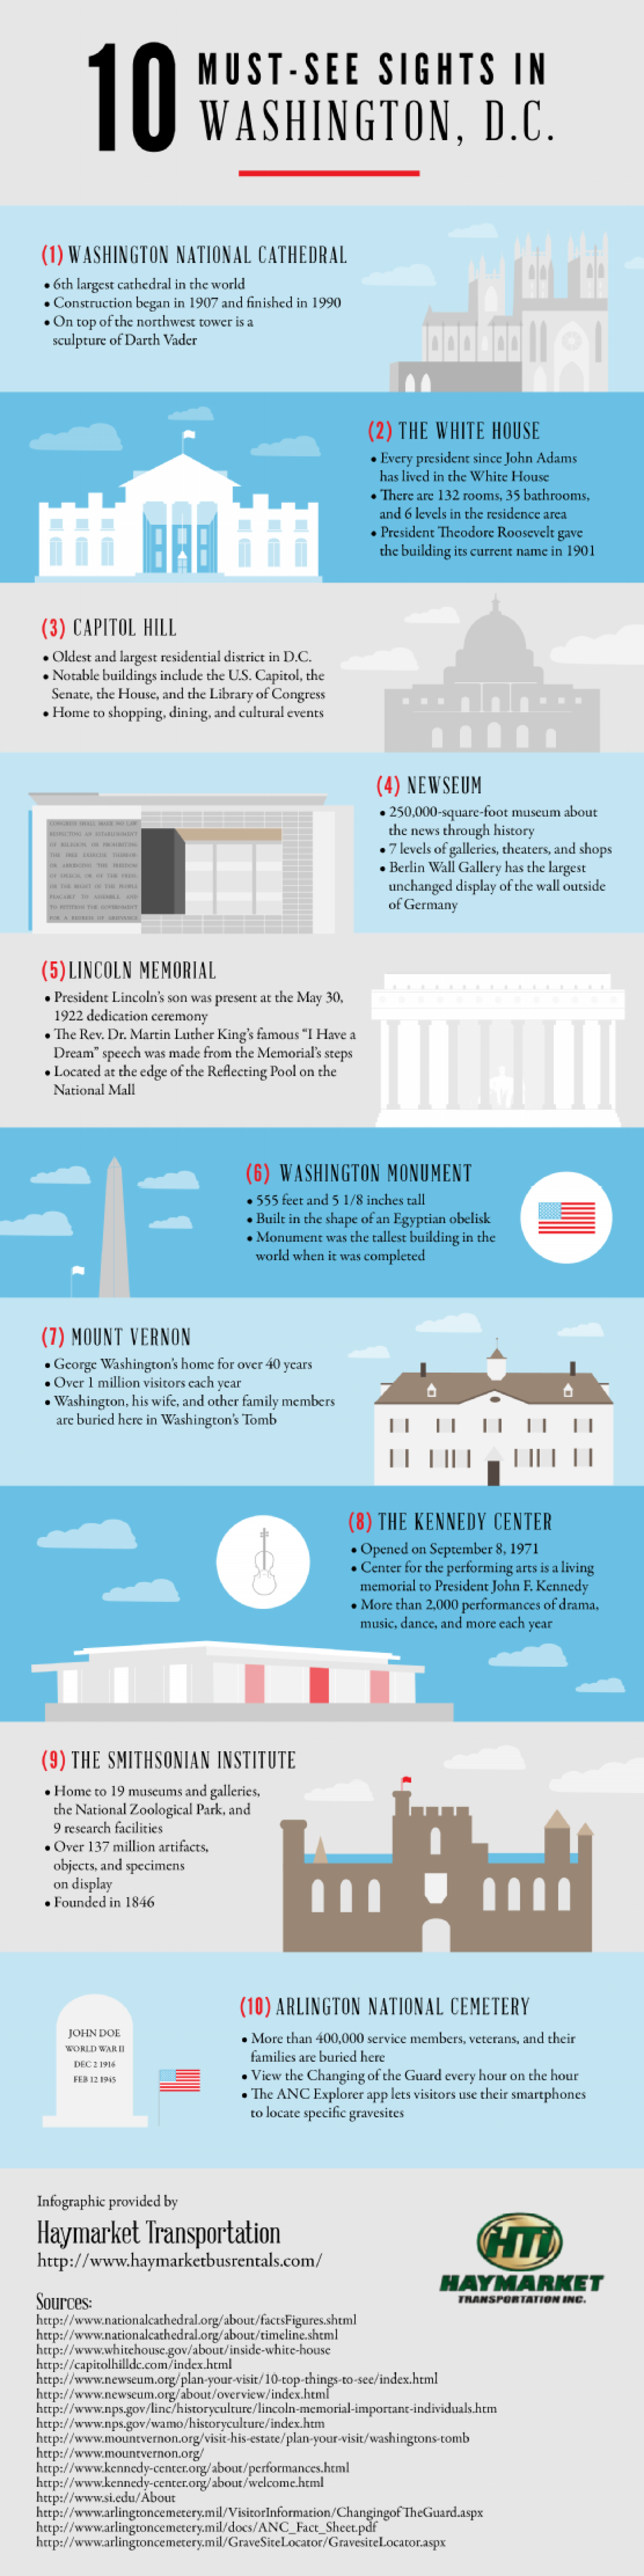 10 Must-See Sights in Washington, D.C. Infographic